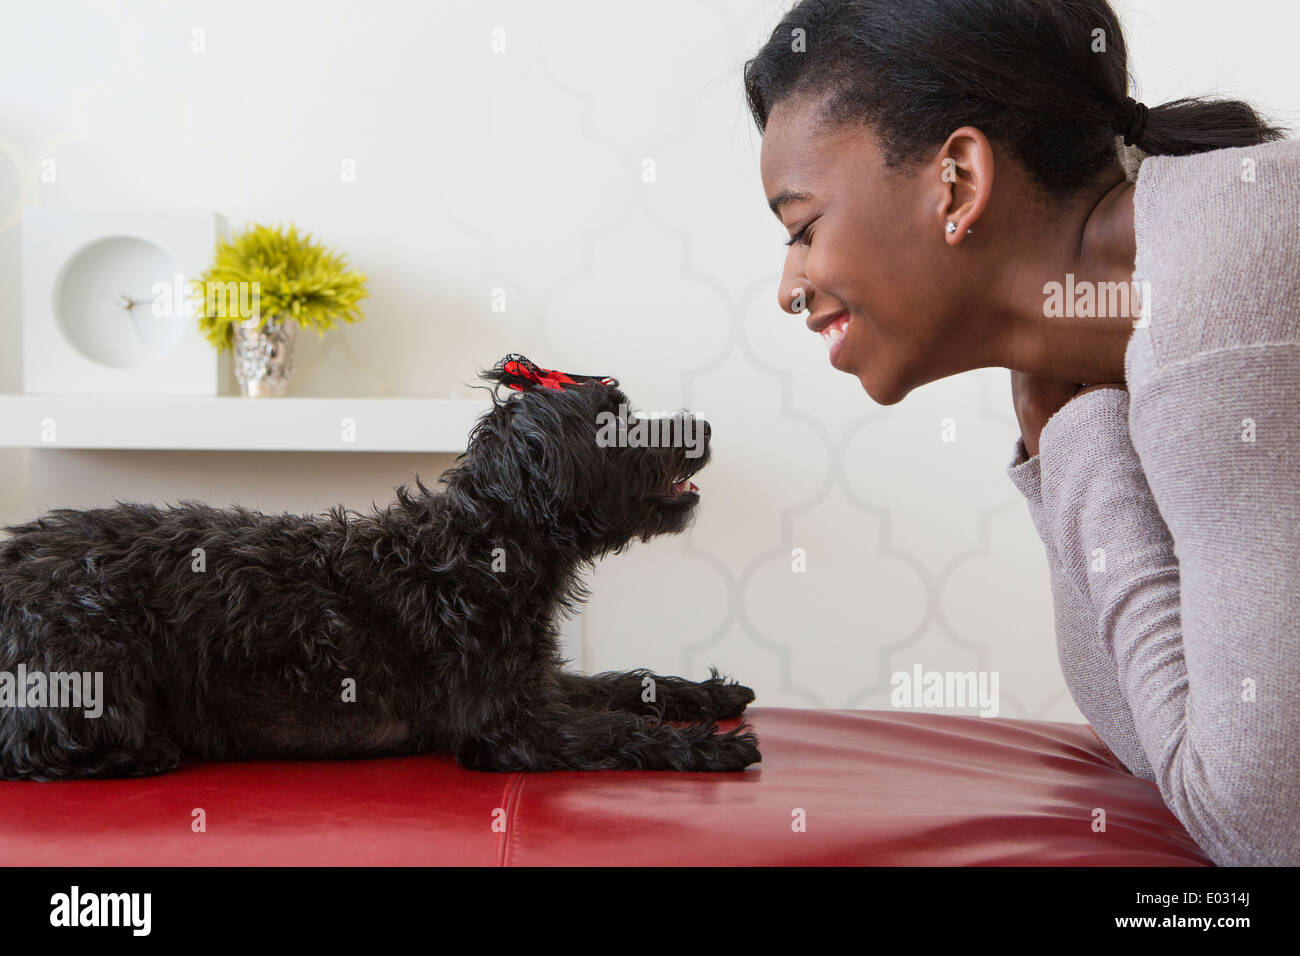 A young girl playing with her small black pet dog. - Stock Image